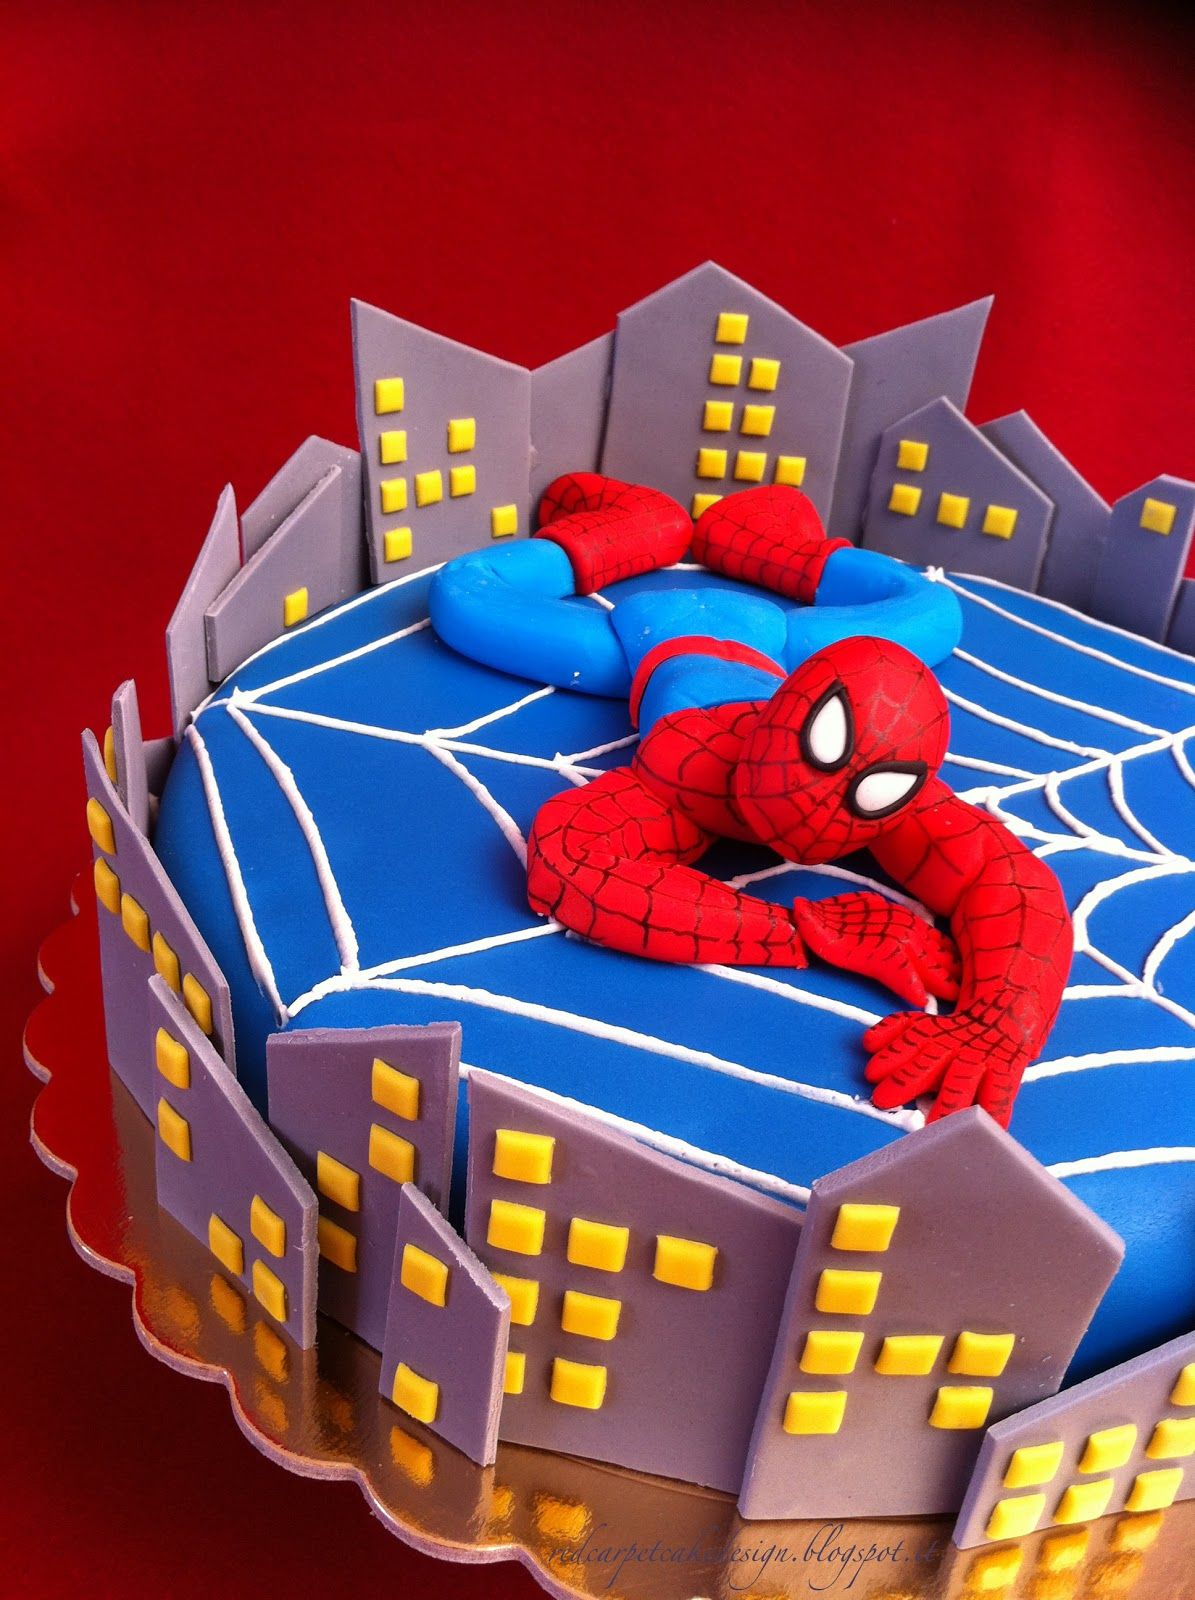 Spiderman Cake Design Pictures : SPIDERMAN CAKE-by Red Carpet Cake Design  RED CARPET ...